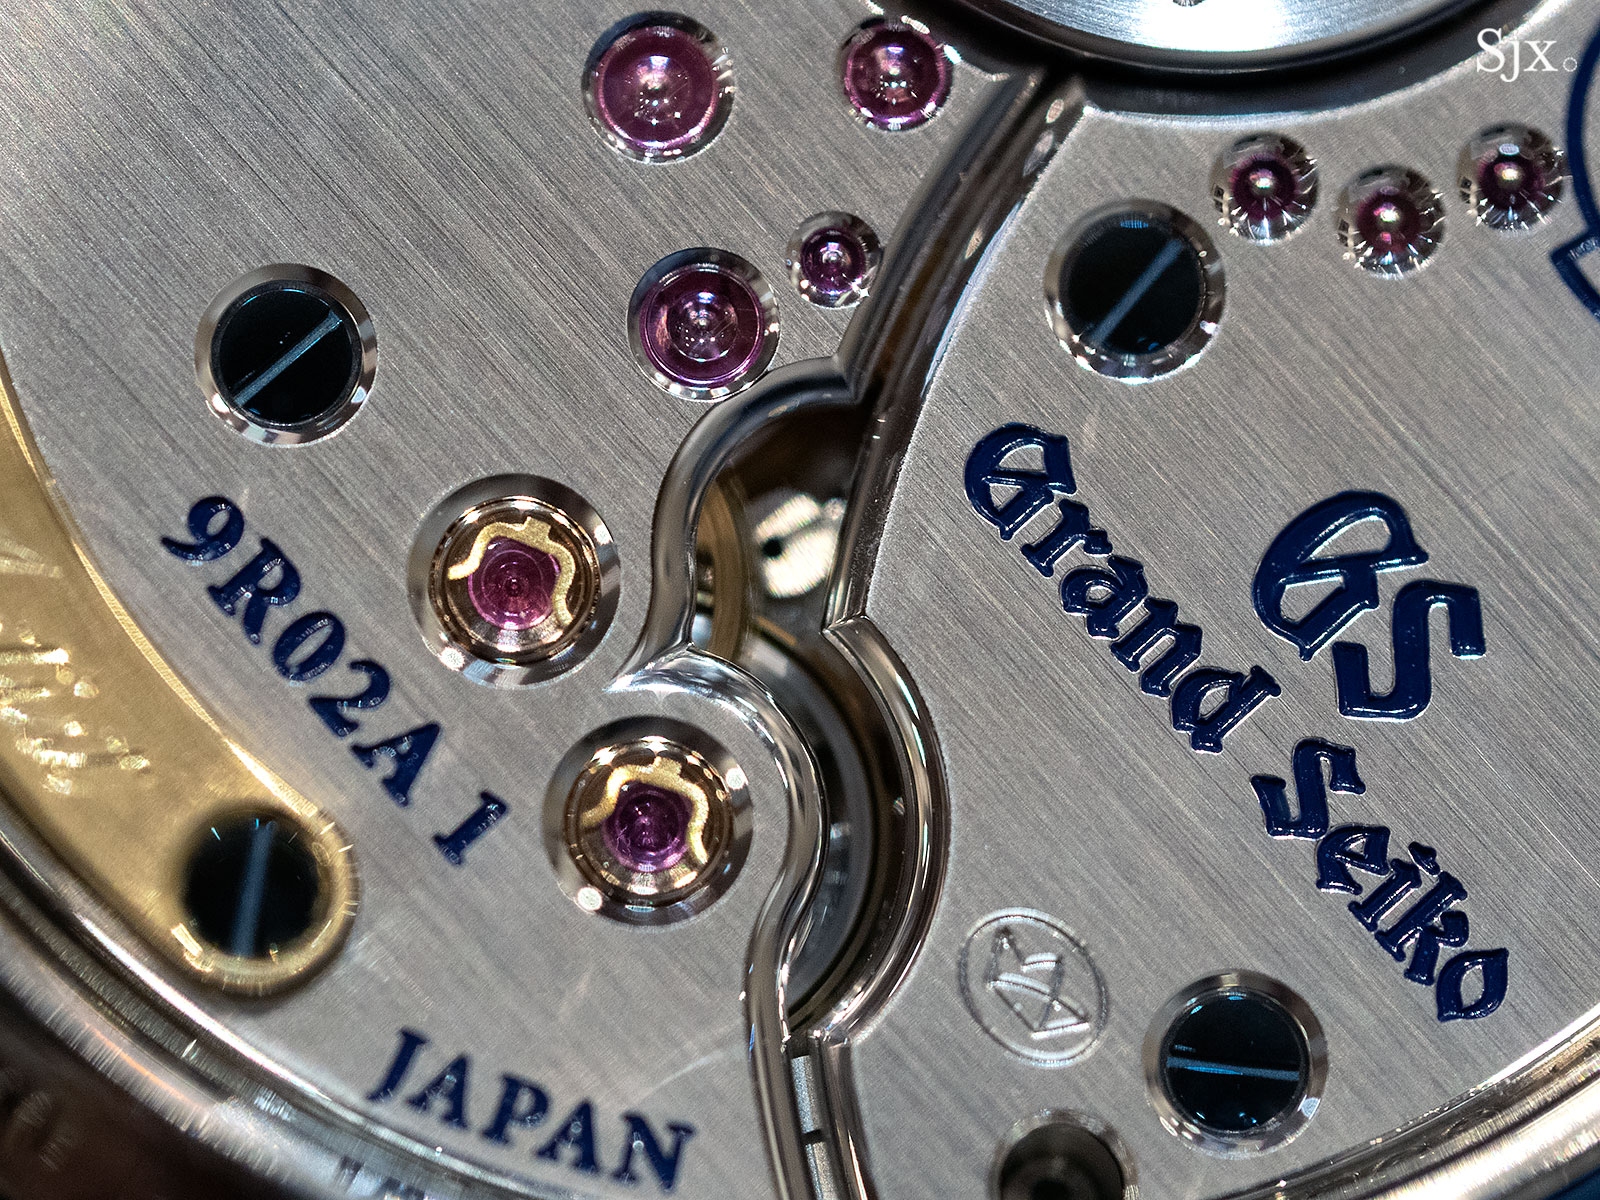 Grand Seiko Spring Drive 9R02 movement 7